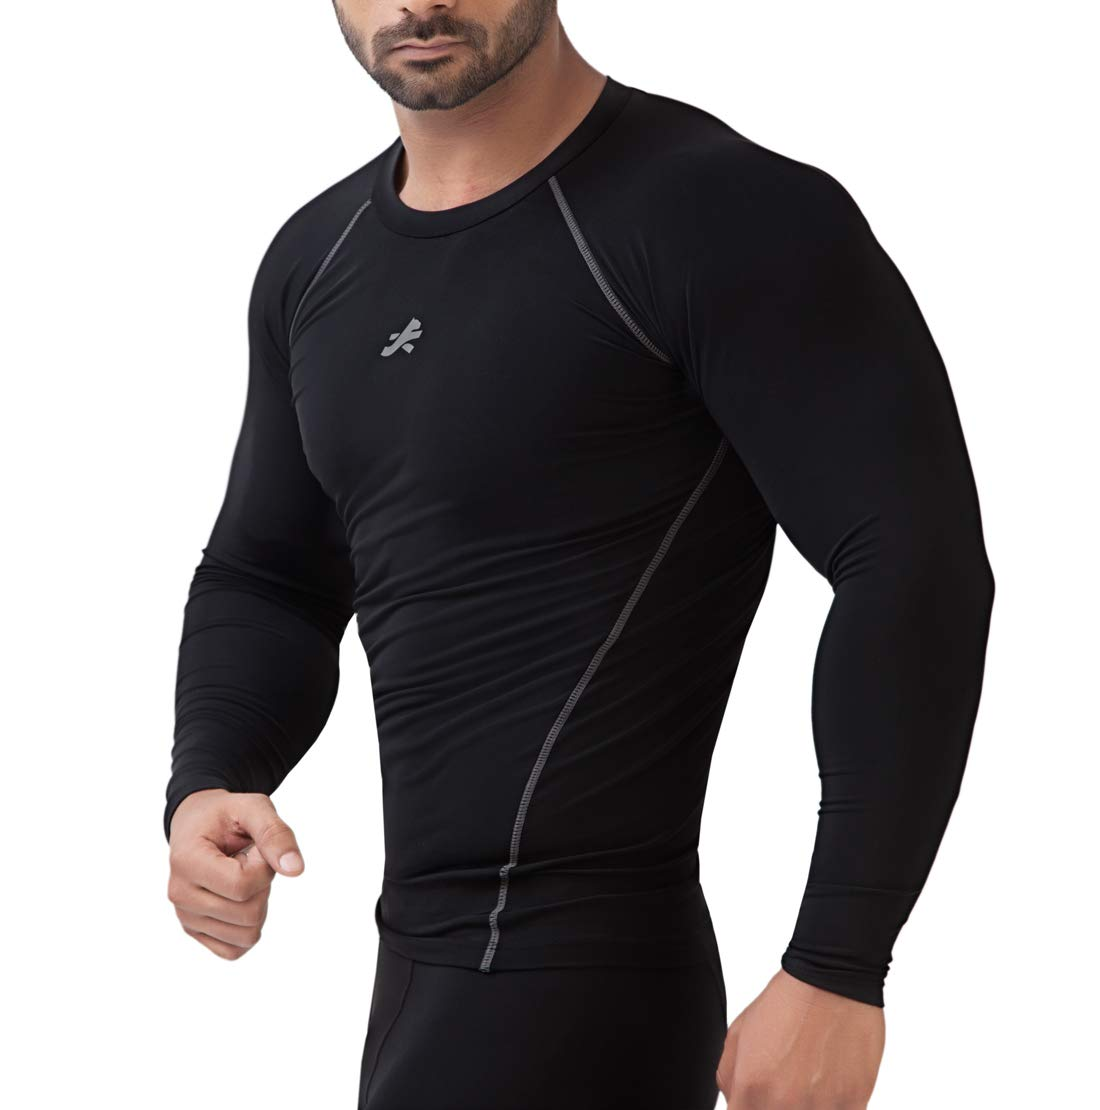 ReDesign Apparels Nylon Redesign Compression Top Full Sleeve Tights T-Shirt for Sports product image